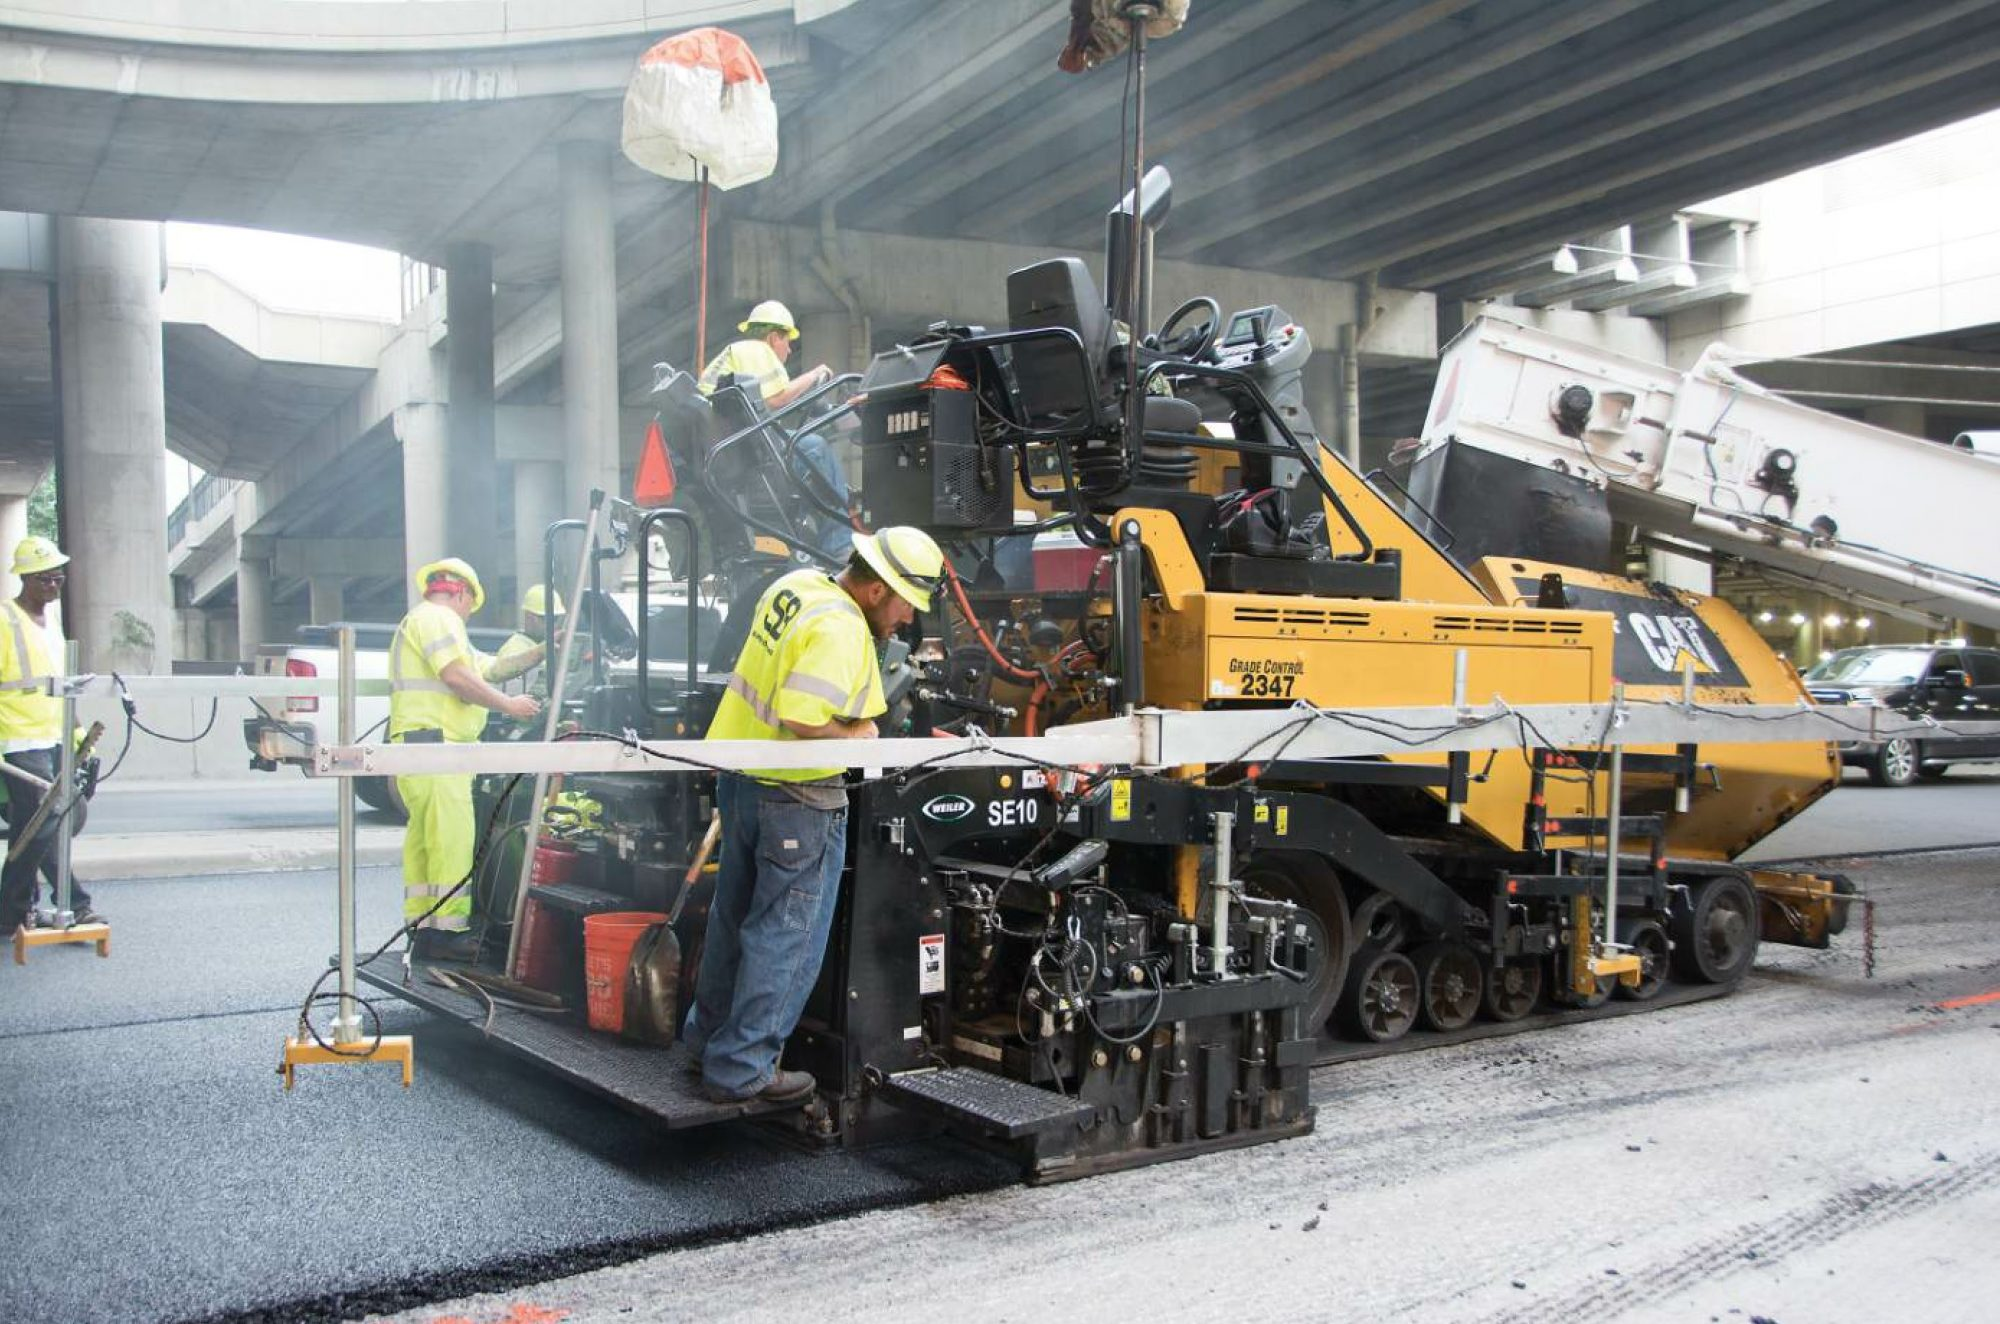 To meet the smoothness spec on the I-670 Loop, the Superior Bowen crew performed the paving non-stop. That started with feeding the Cat® AP1055F paver with a material transfer machine. All photos courtesy Caterpillar.